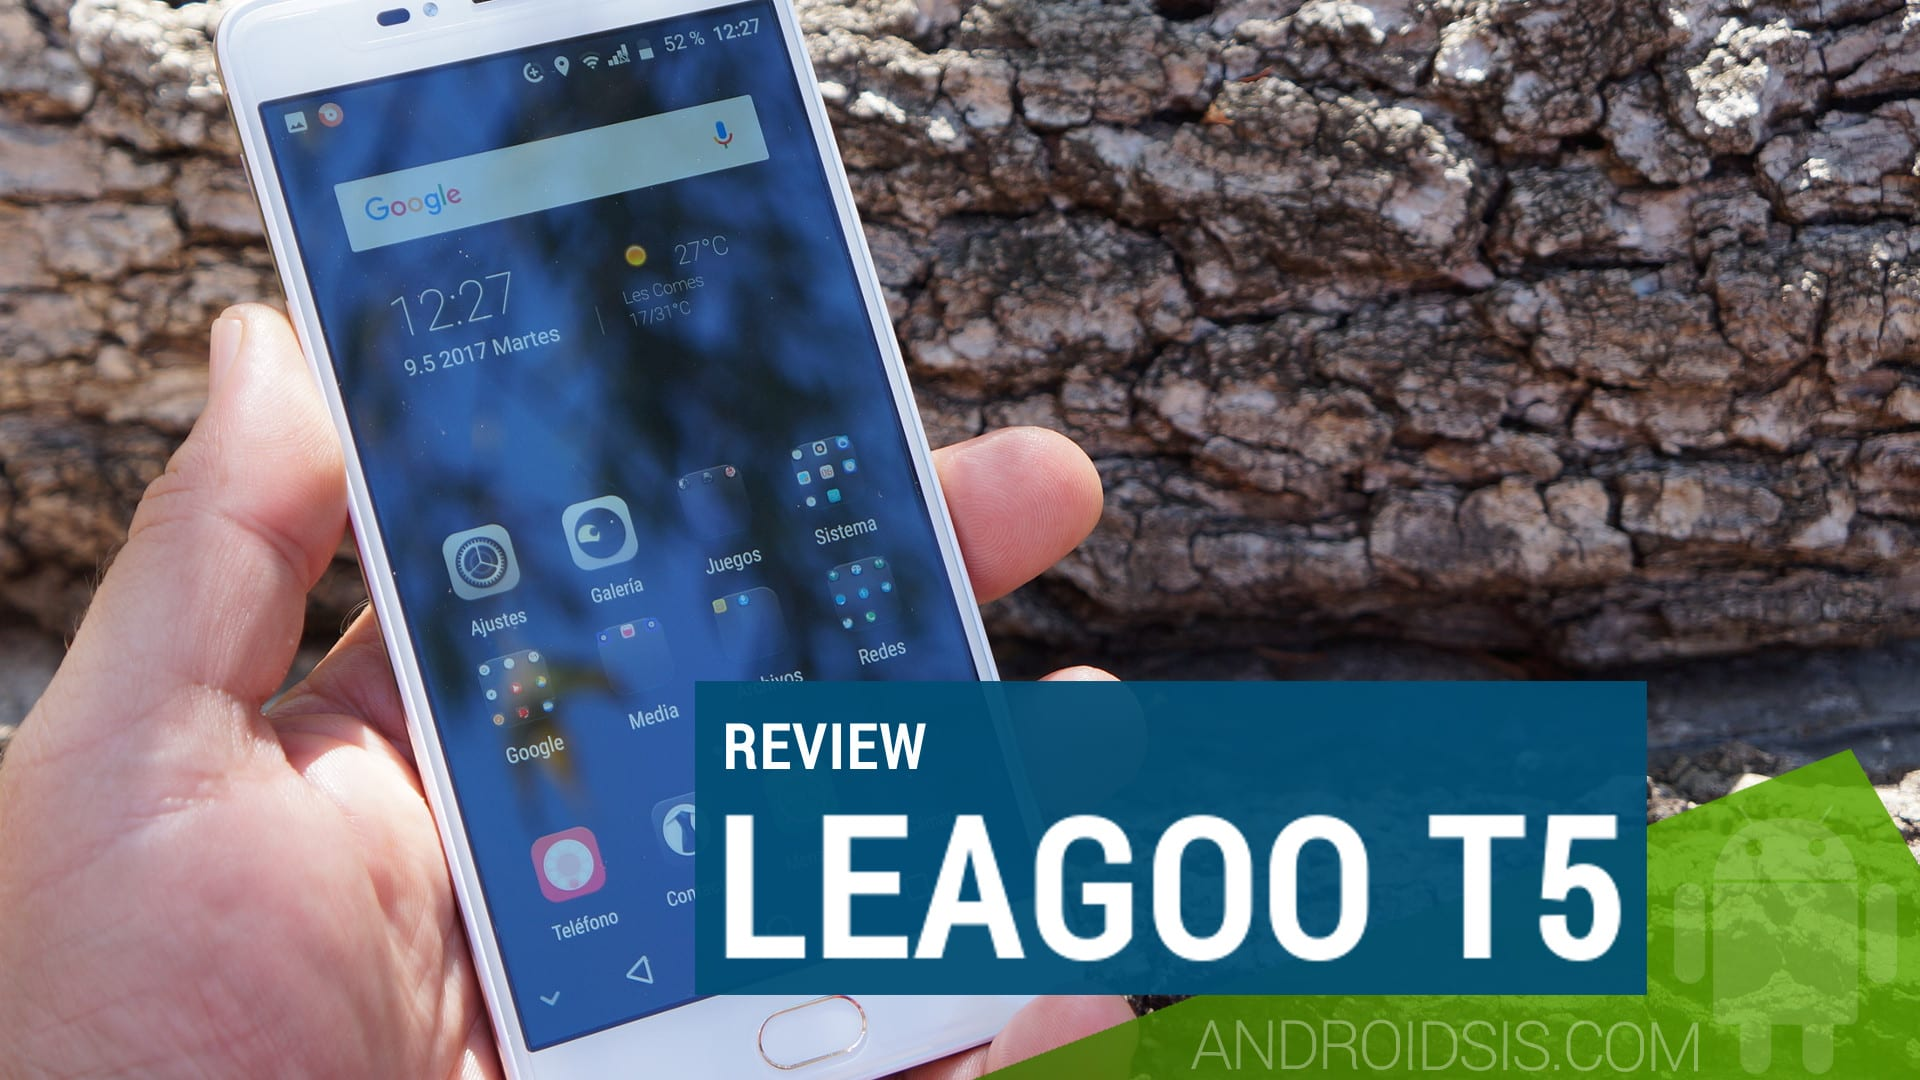 Review Leagoo T5